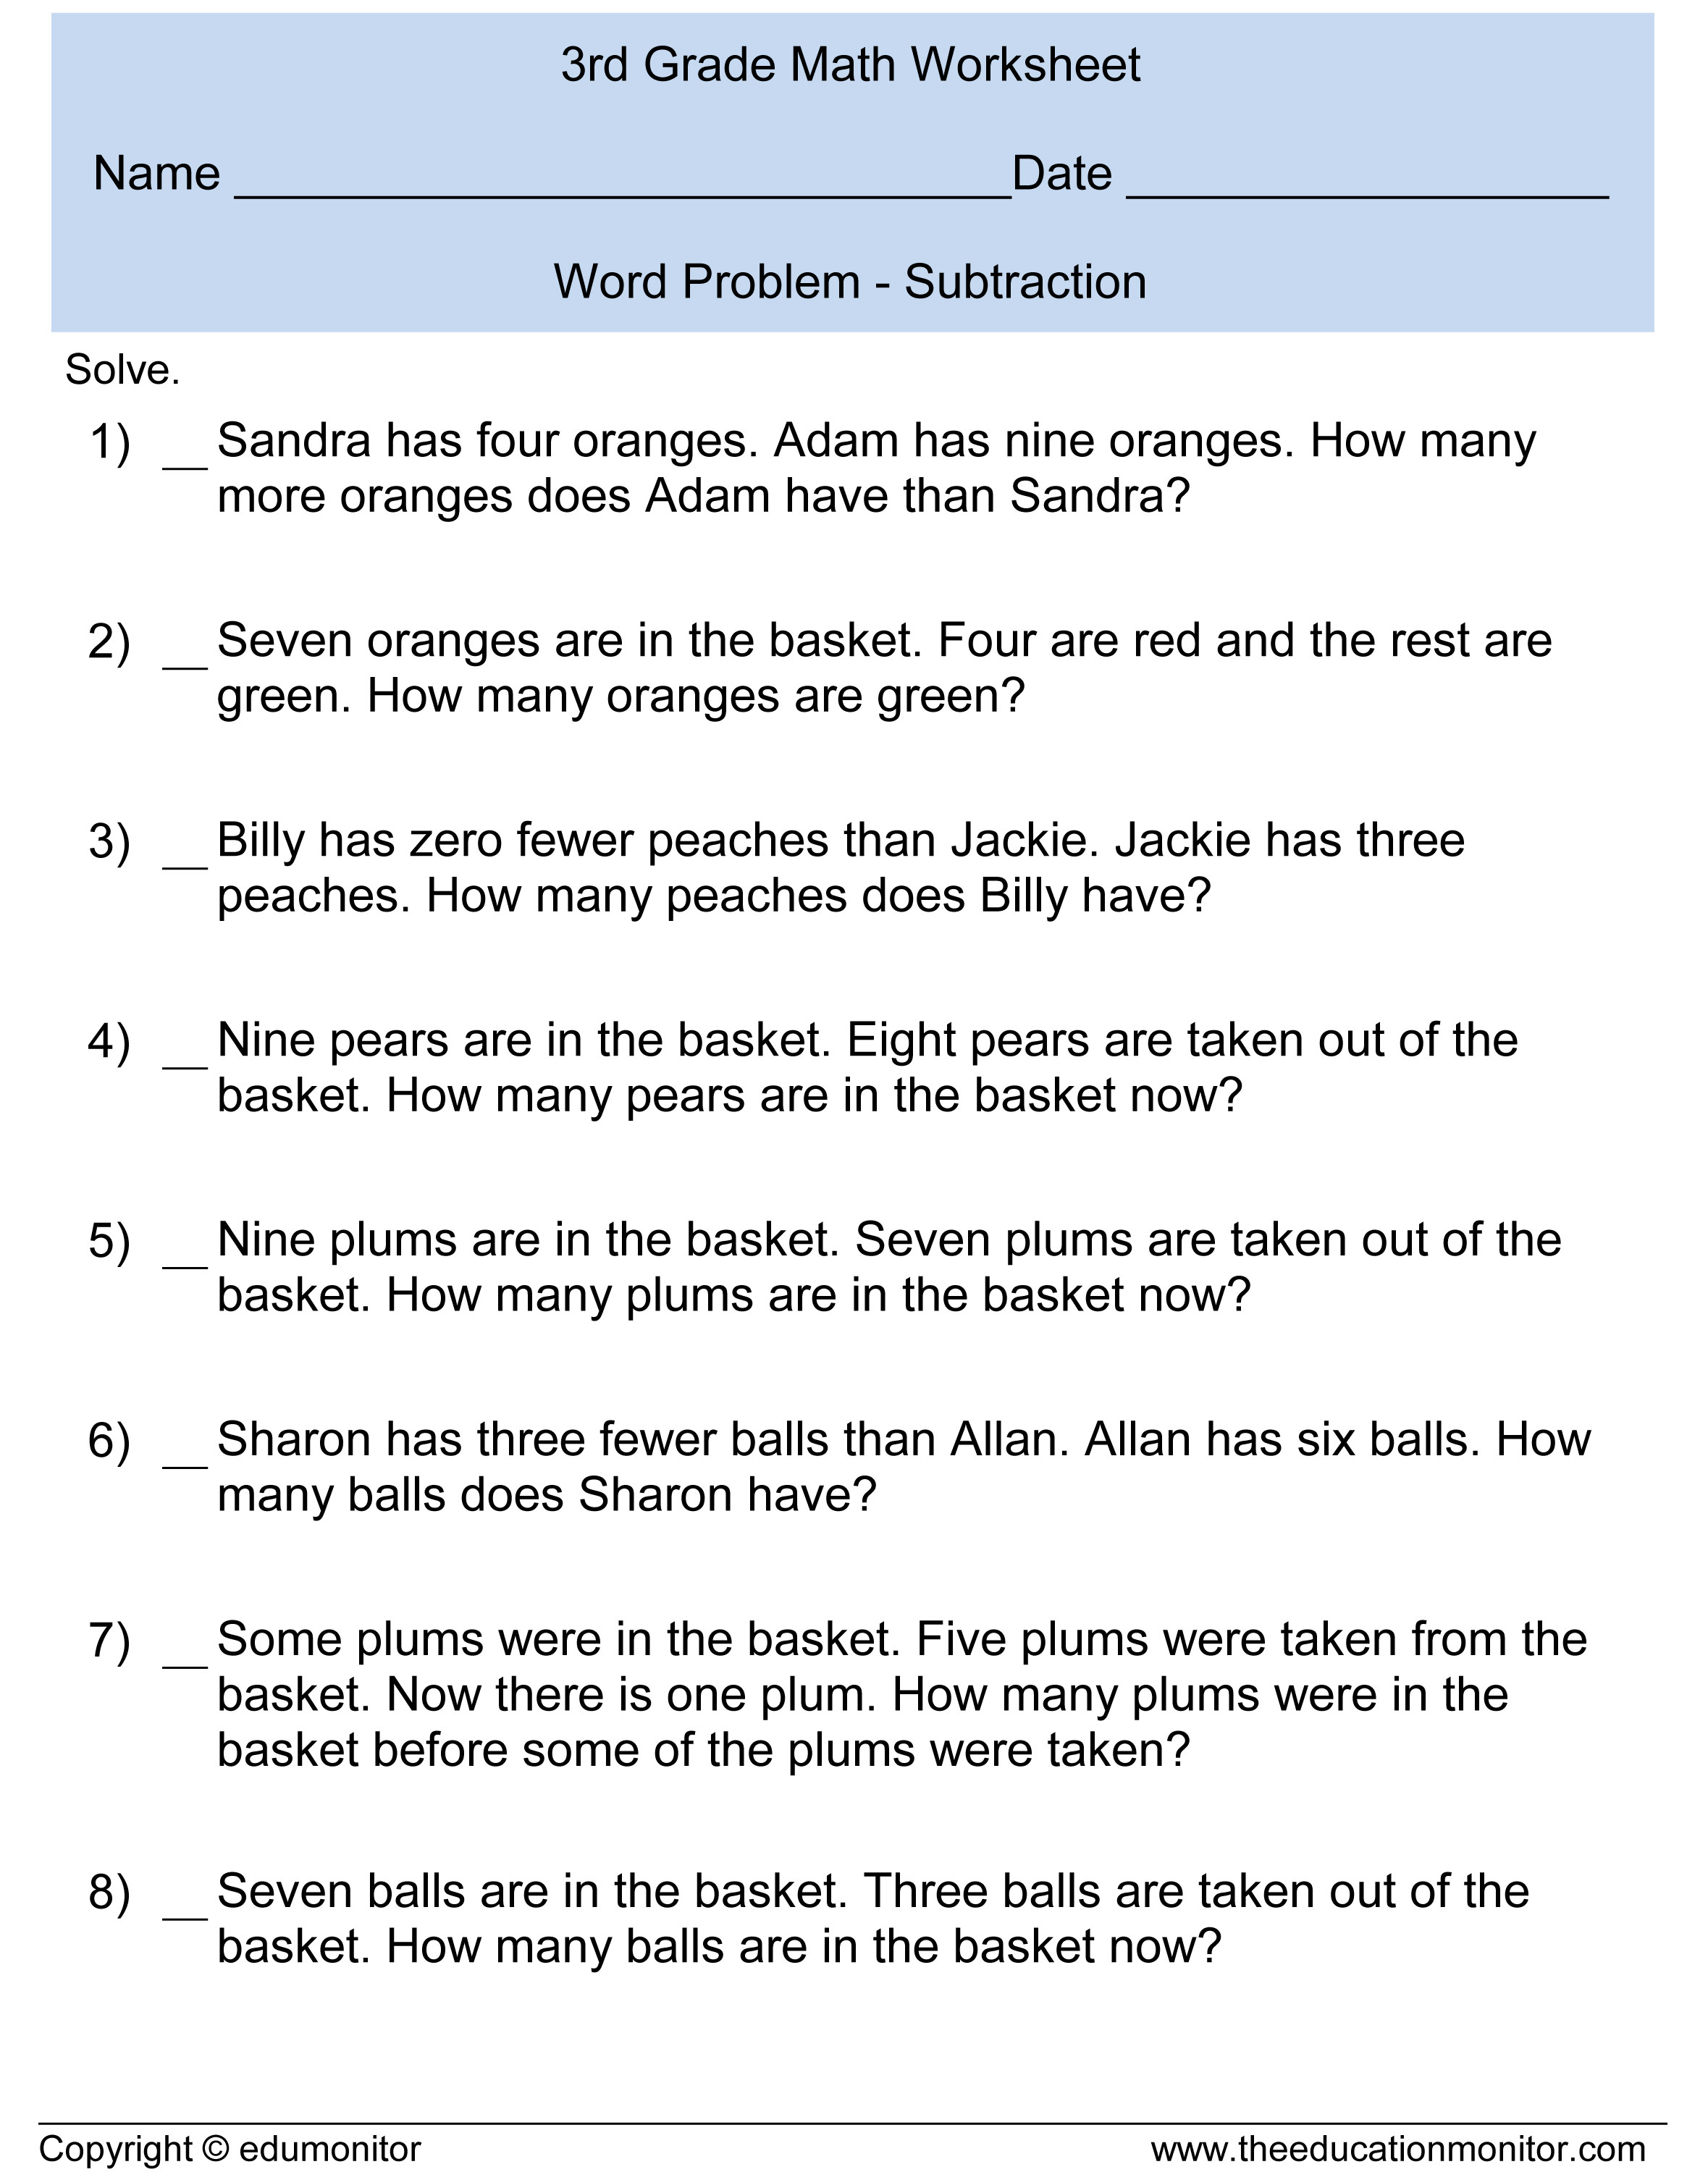 Third Grade Fraction Word Problems Subtraction Word Problems for Kids